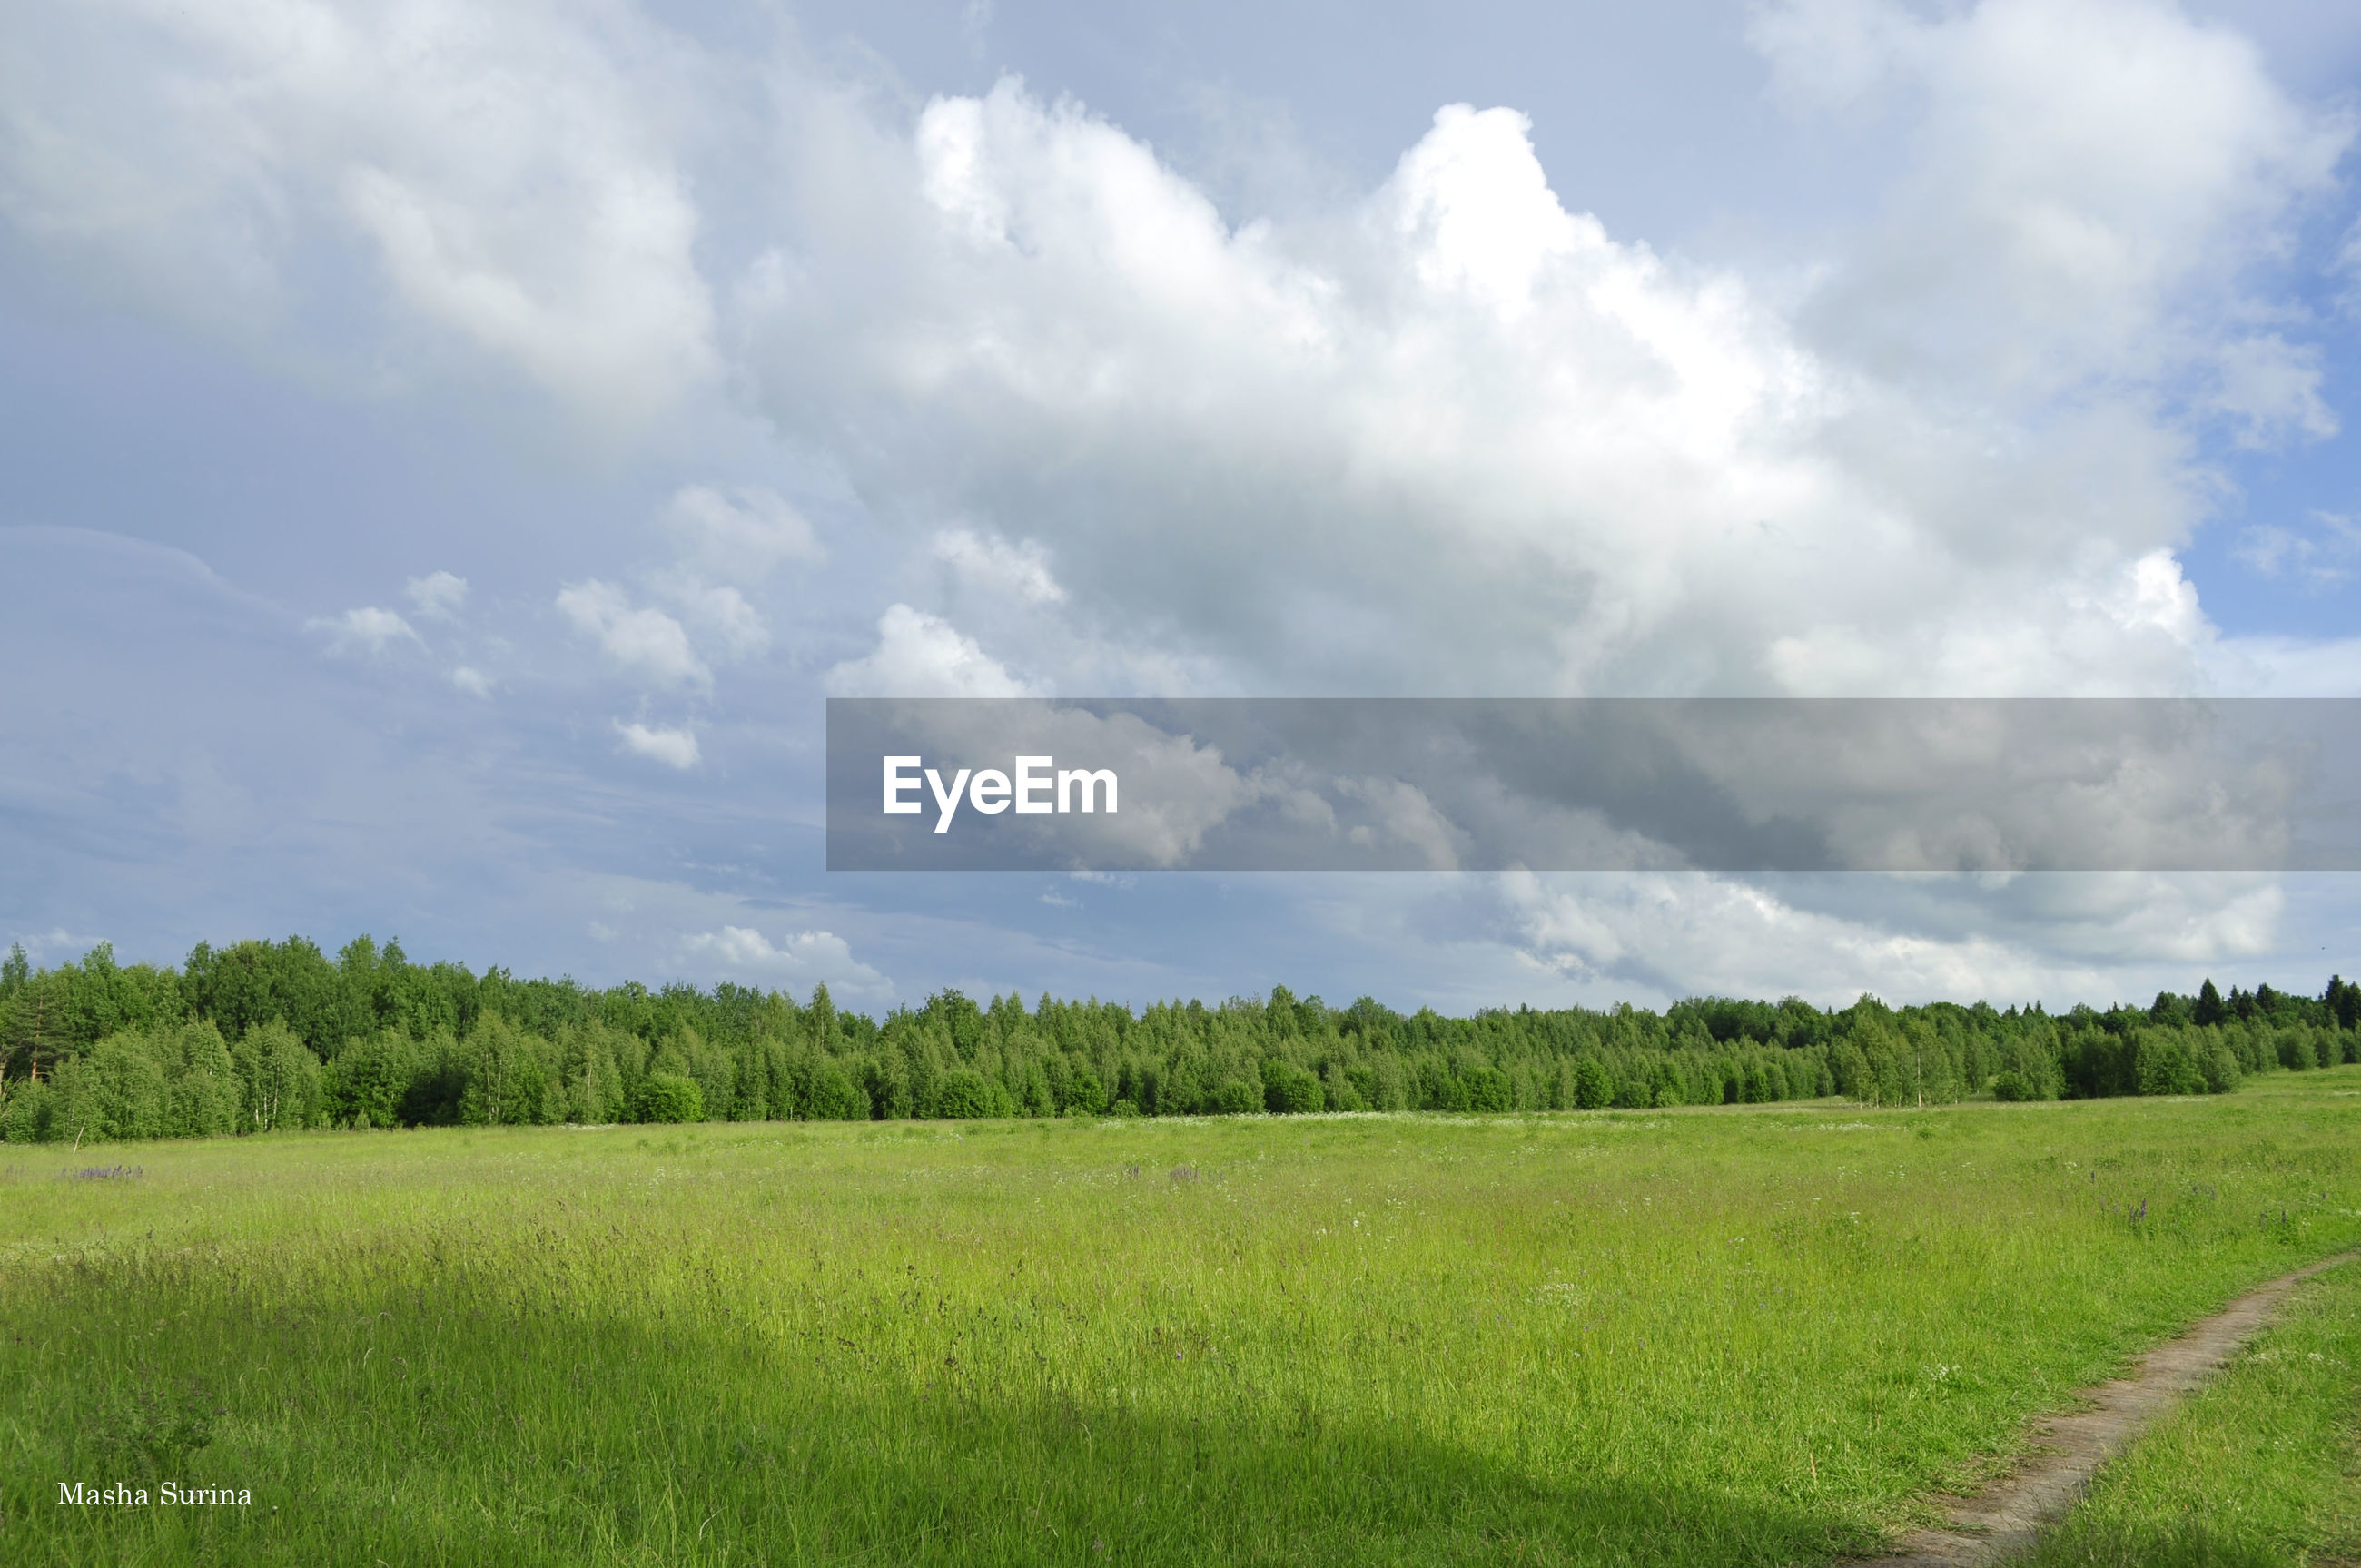 sky, field, landscape, tranquil scene, tranquility, grass, scenics, cloud - sky, beauty in nature, rural scene, agriculture, growth, green color, nature, cloud, cloudy, farm, tree, grassy, crop